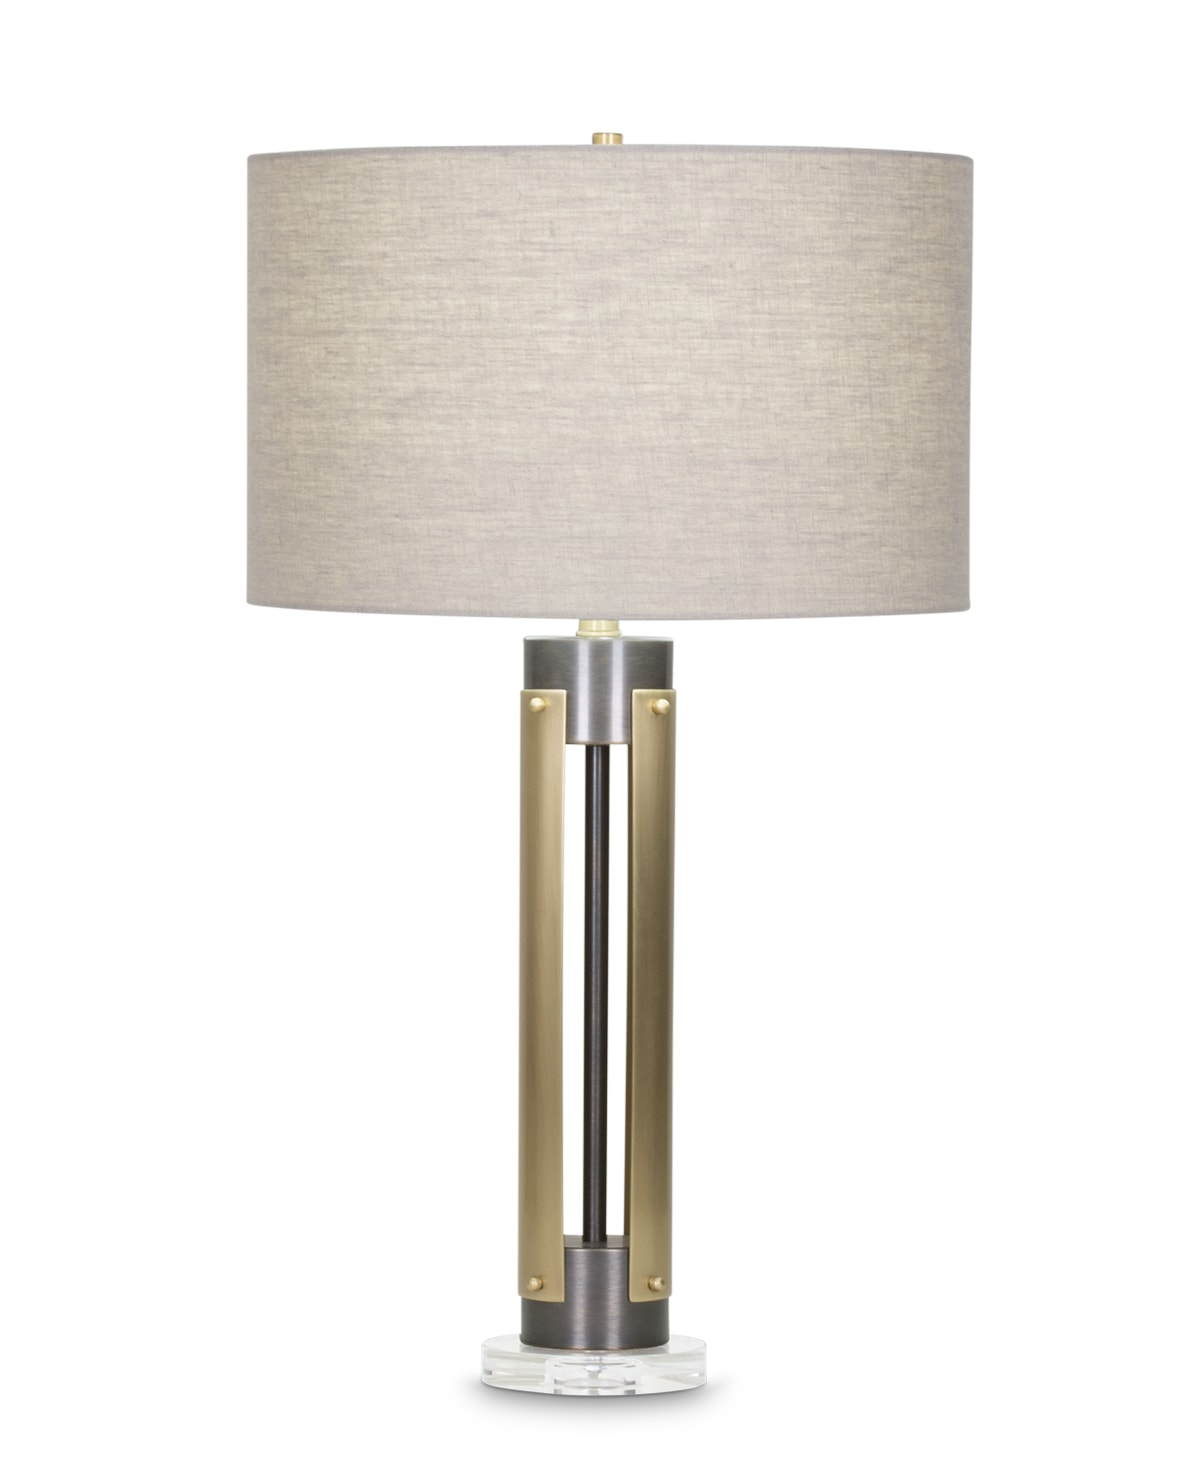 FlowDecor Kipling Table Lamp in metal with antique brass & bronze finishes and beige linen drum shade (# 4047)